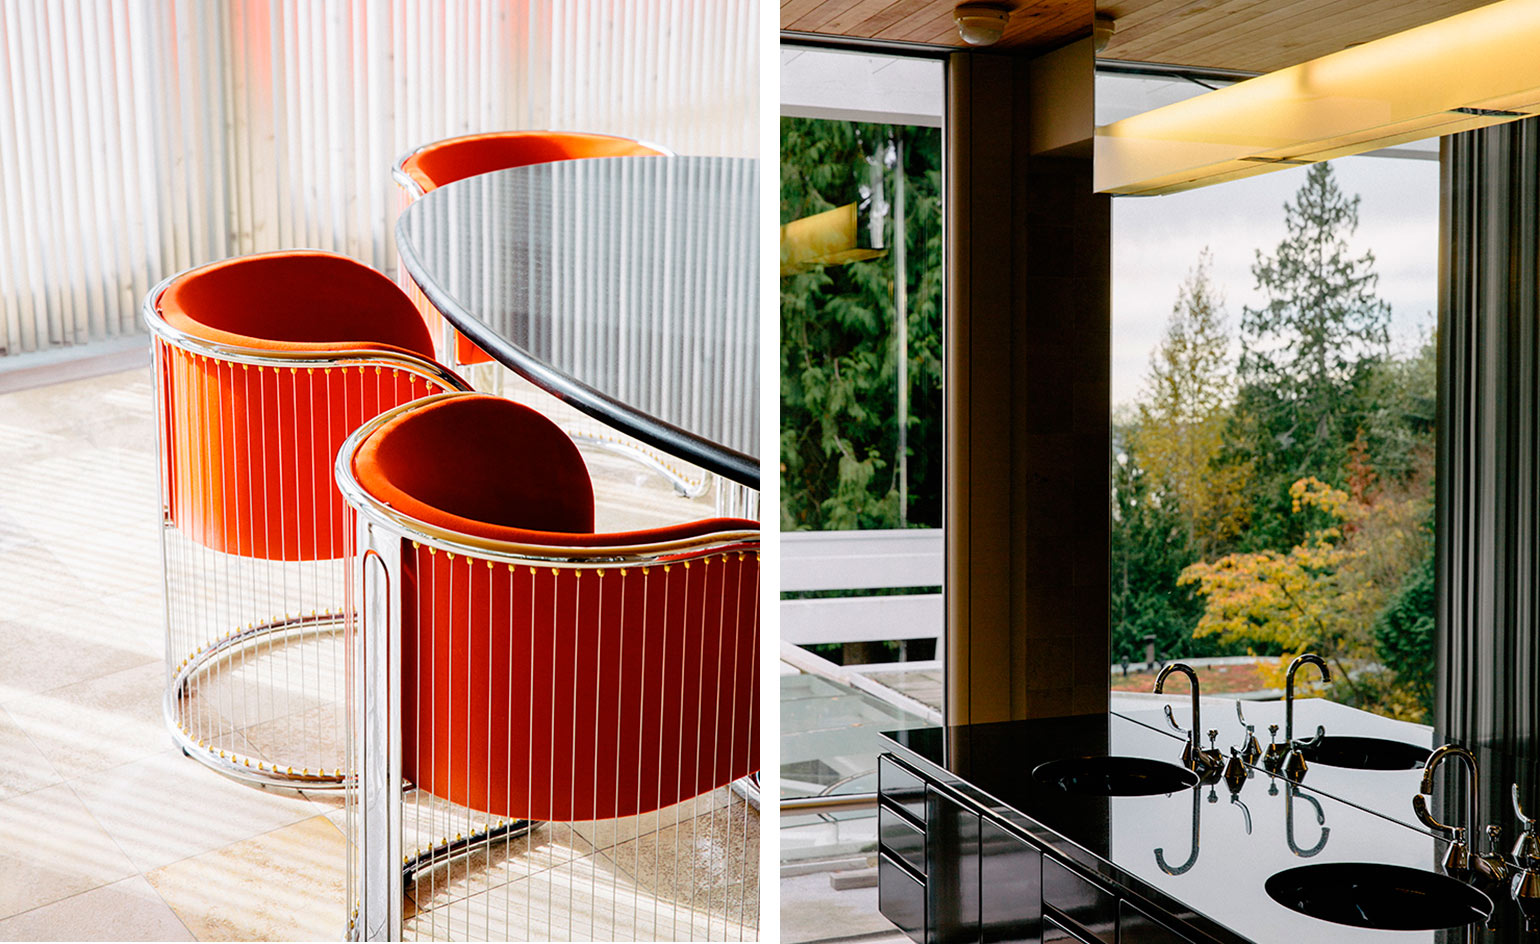 The furniture and fittings are manufactured by Eppich's Ebco Industries